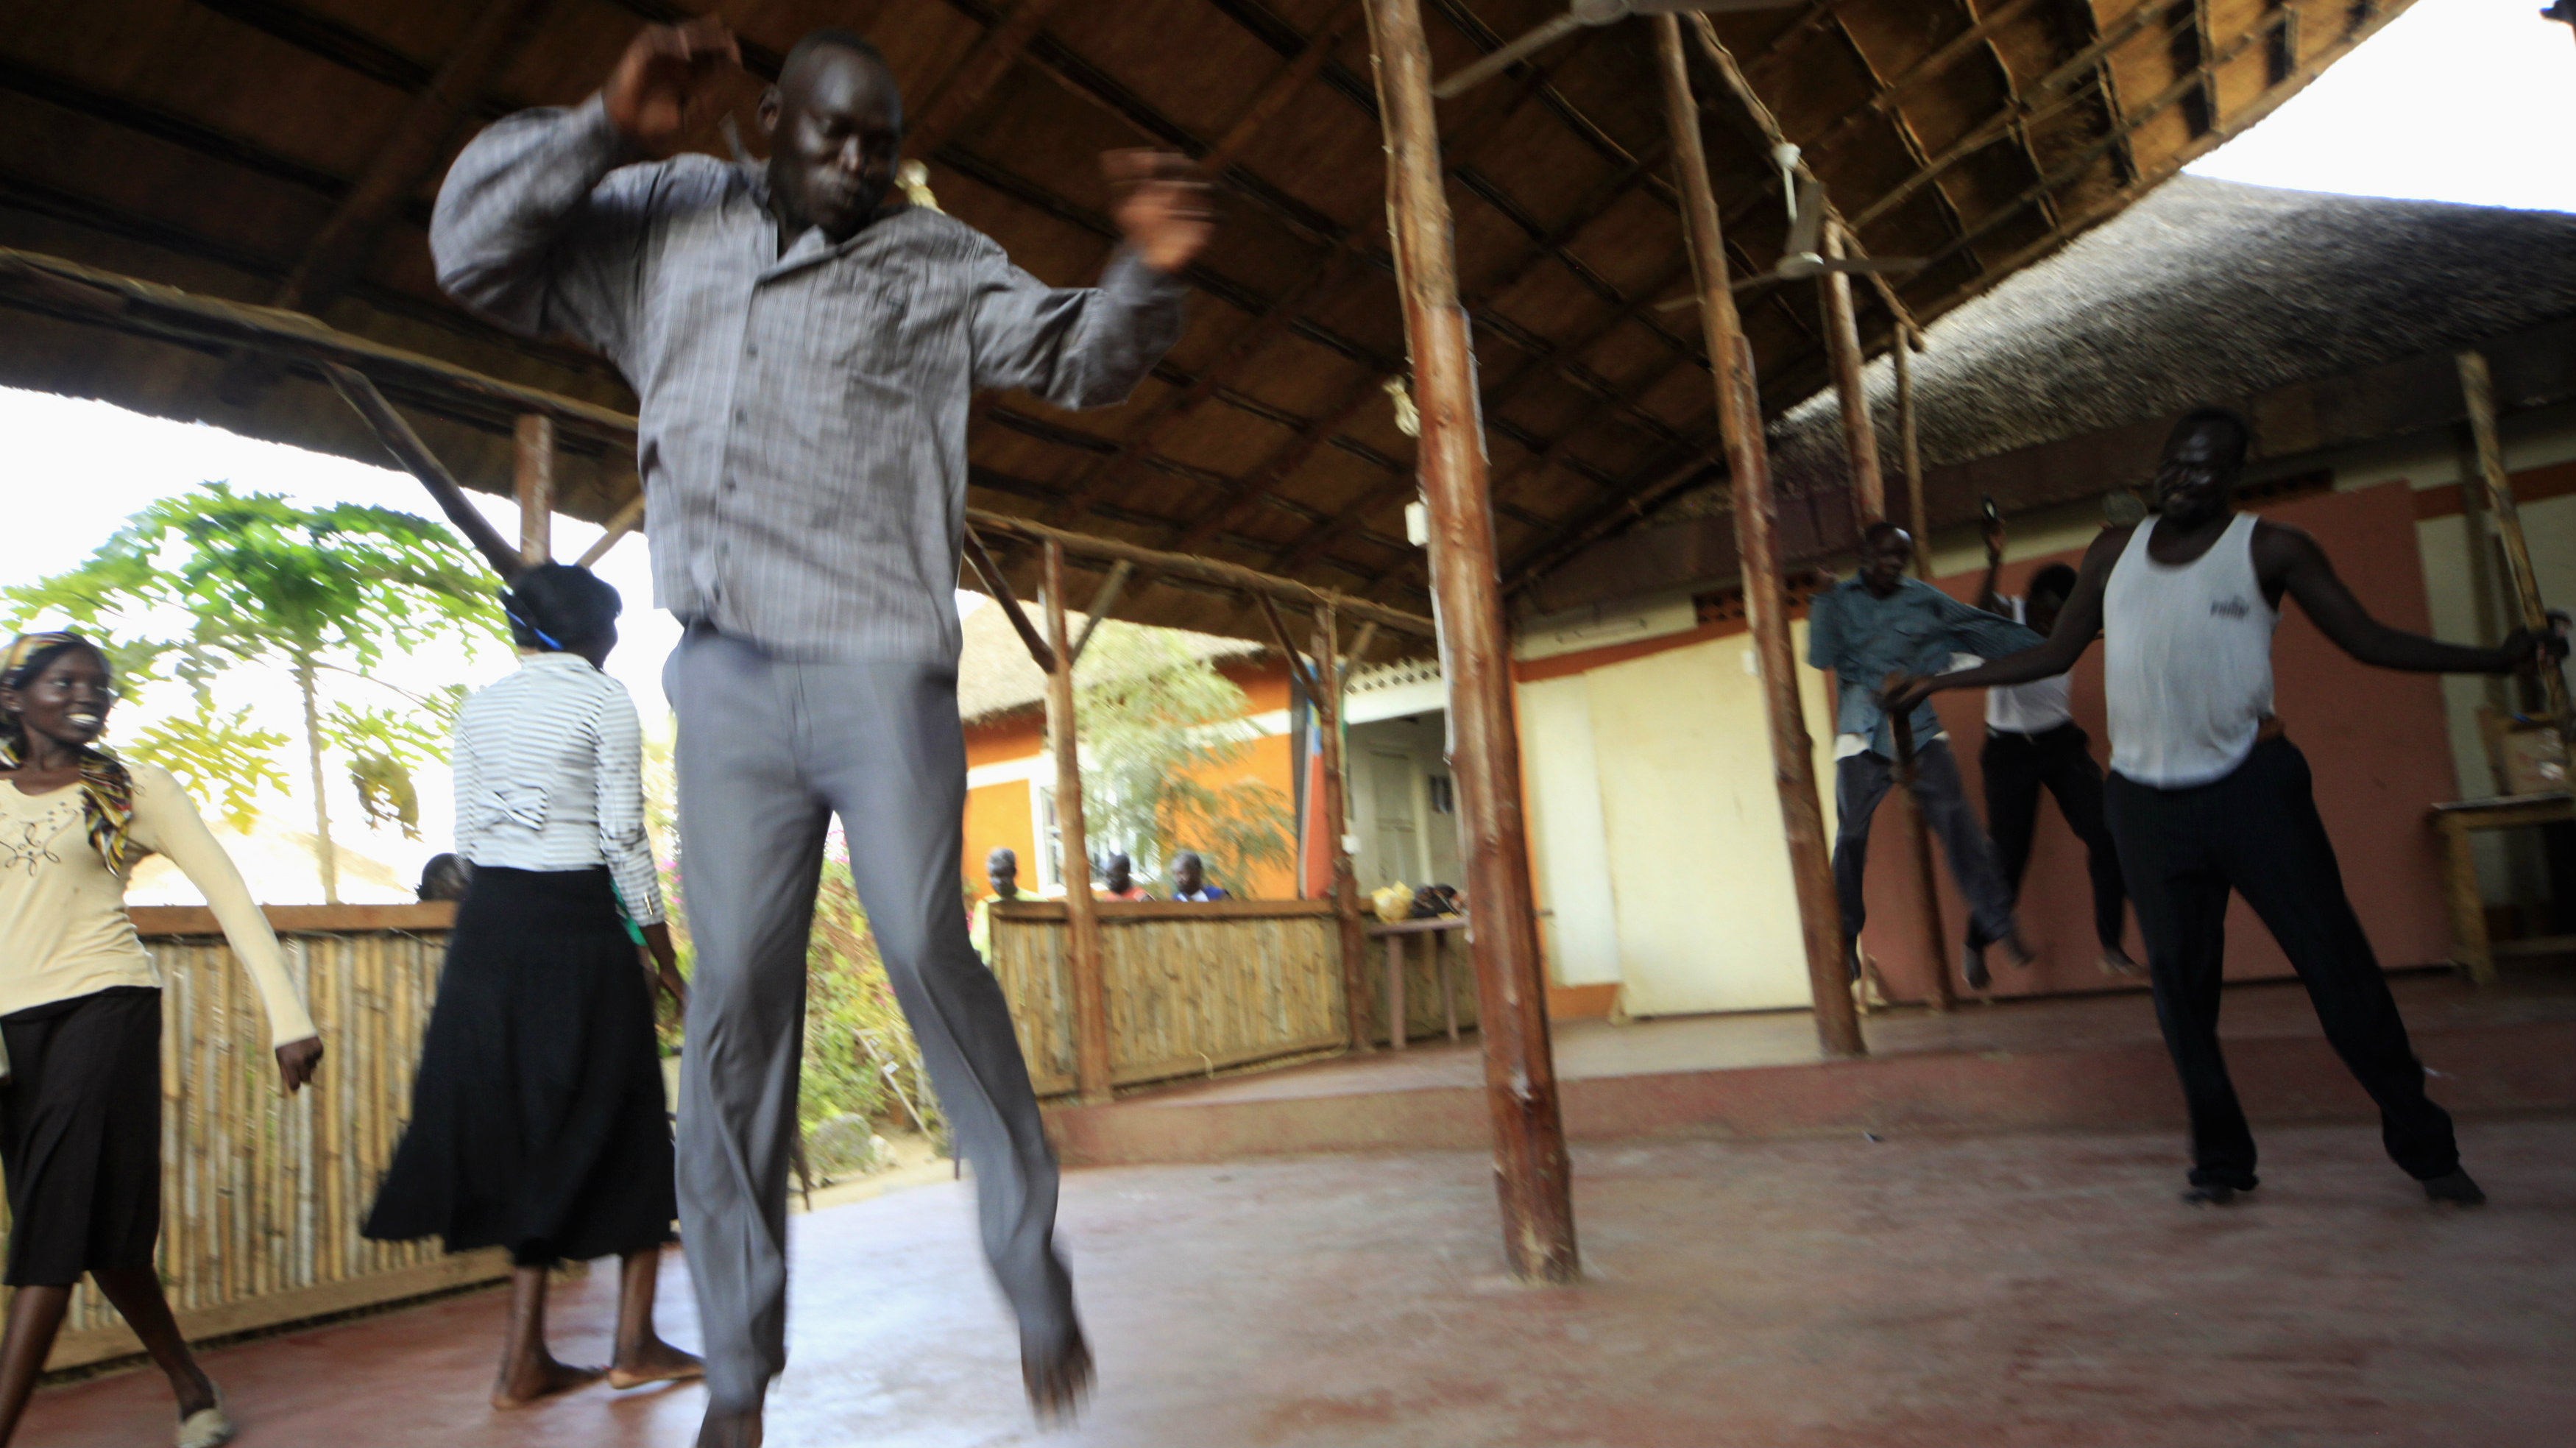 Actors from the South Sudan Theatre Company perform during theatre training as they prepare for the upcoming World Shakespeare Festival, in Juba March 27, 2012. Thousands of artists worldwide including South Sudan will participate in about 70 productions, supporting events and exhibitions in Britain as part of the festival. The festival takes place from April 23. Picture taken March 27, 2012. REUTERS/ Mohamed Nureldin Abdallah (SOUTH SUDAN - Tags: SOCIETY ENTERTAINMENT)